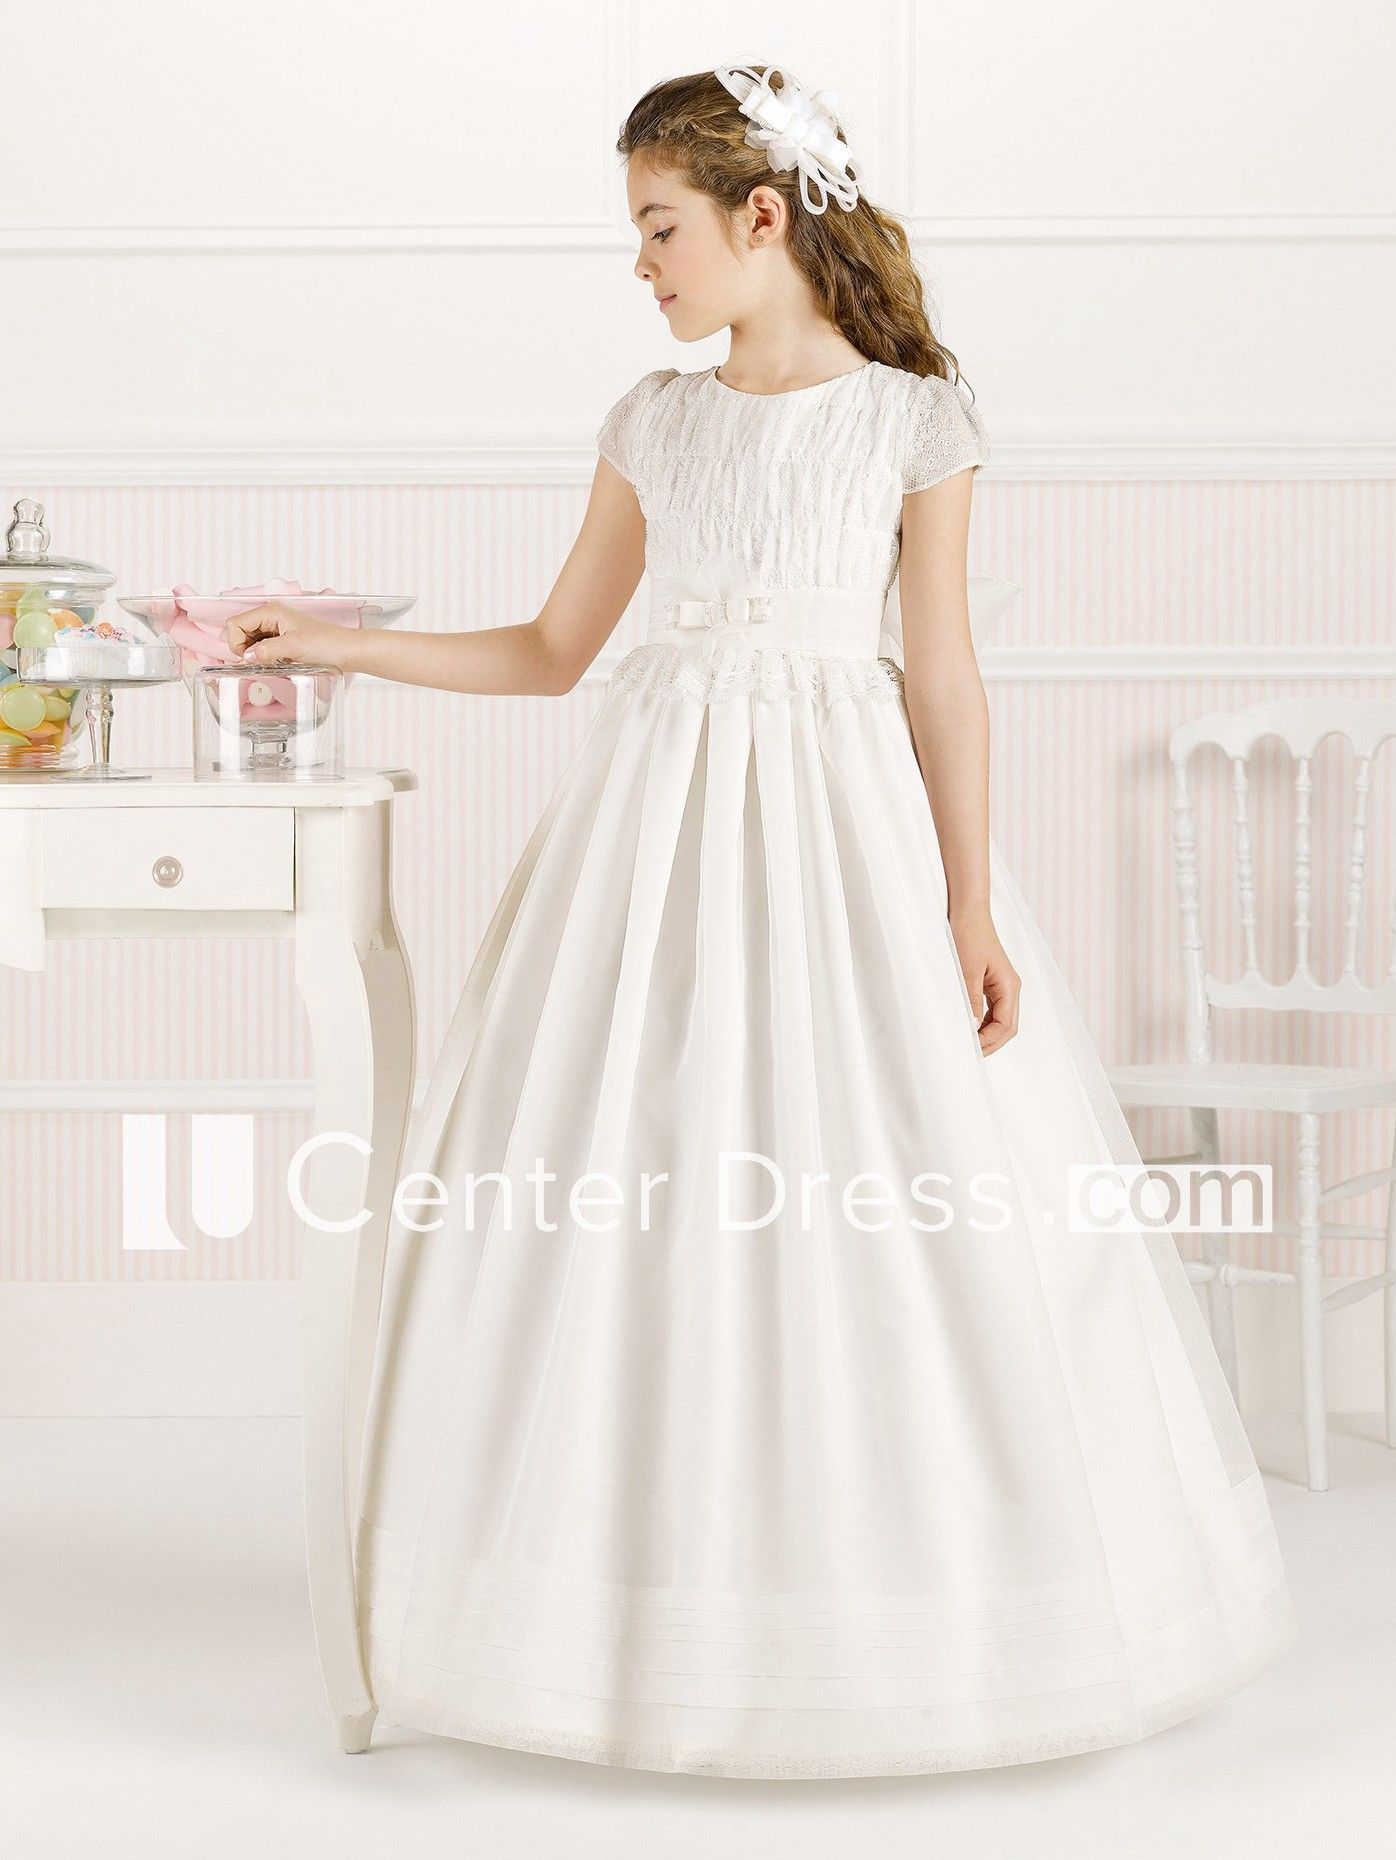 13ba6fcf7 A-Line Jewel-Neck Short-Sleeve Lace Long Flower Girl Dress With Pleats And  Bow - UCenter Dress